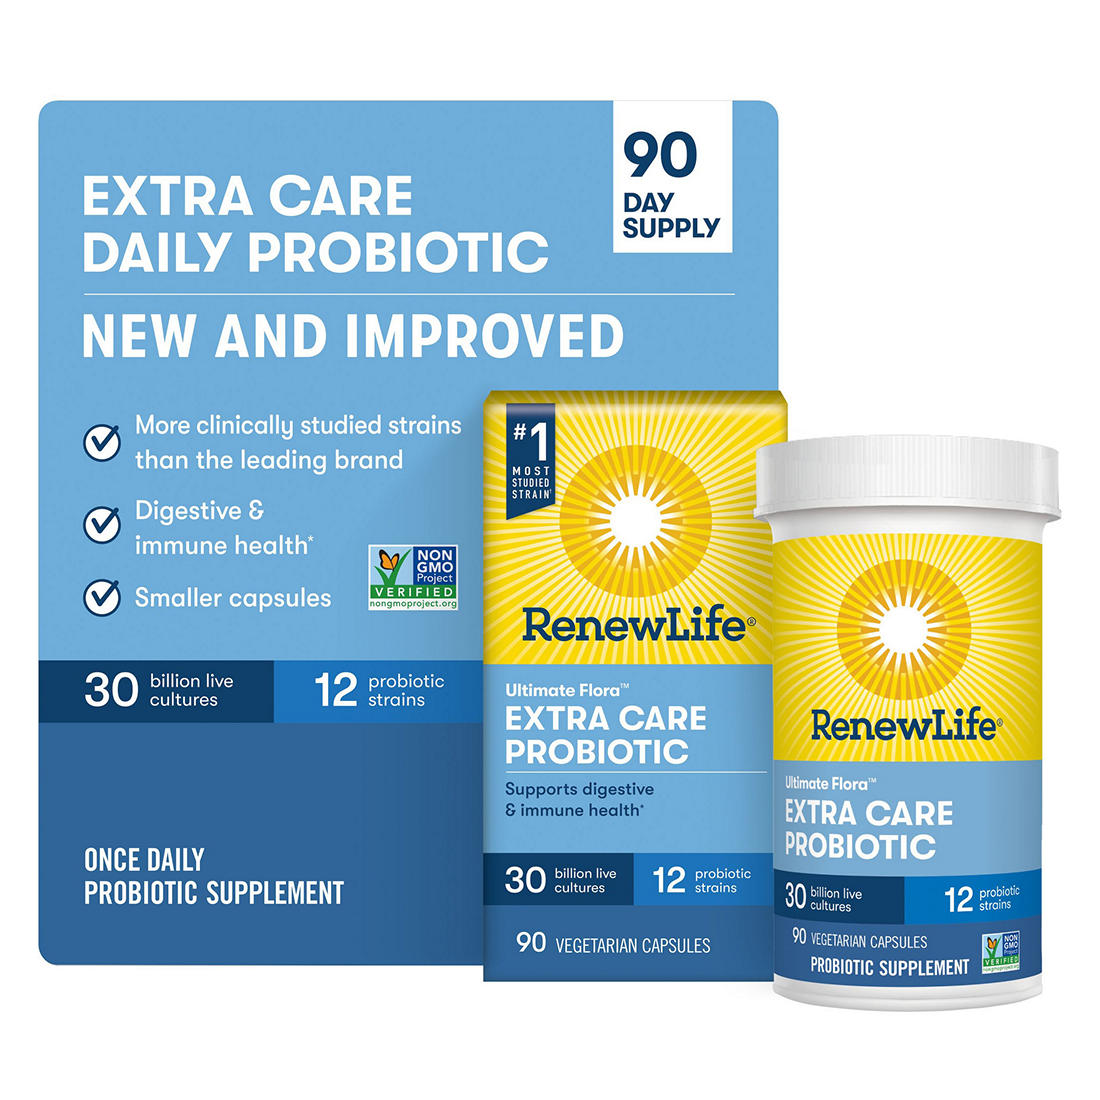 image about Renew Life Coupon Printable known as Renew Everyday living Far more Treatment Best Flora Probiotic, 90 ct.